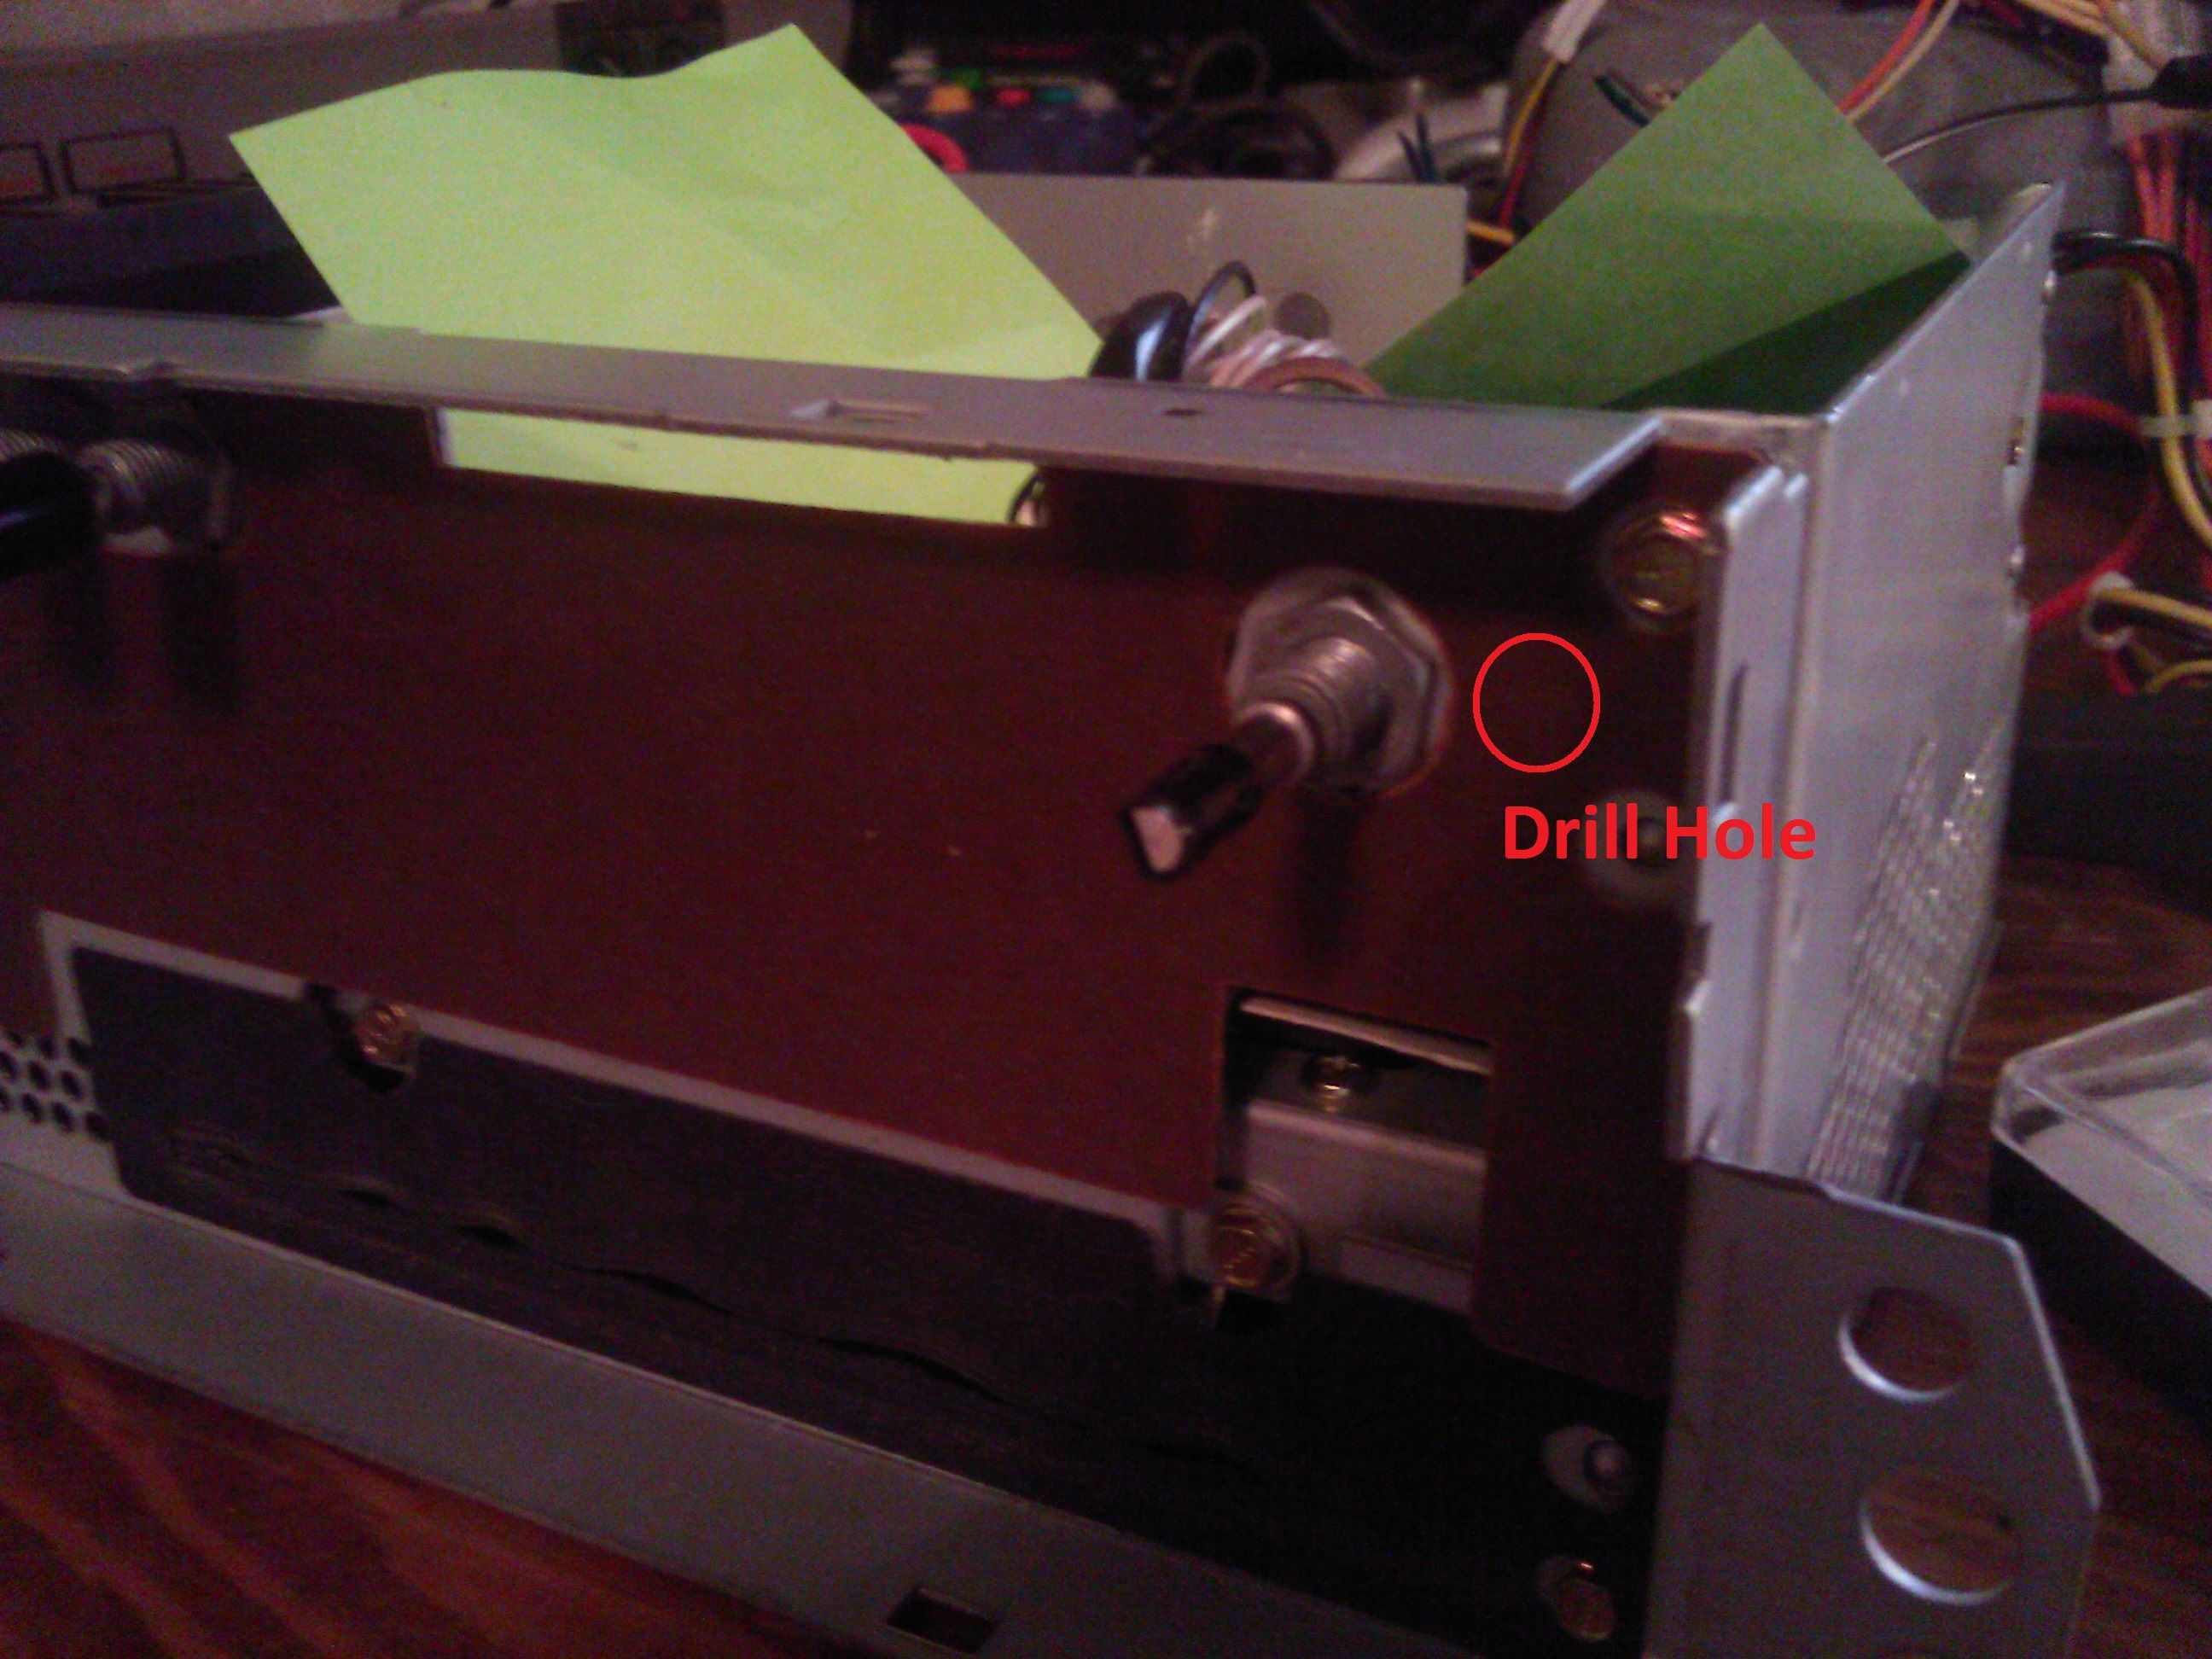 then, you must take out some of the support material behind the plastic  faceplate to fit the port inside, along with drilling a hole and cutting  the metal